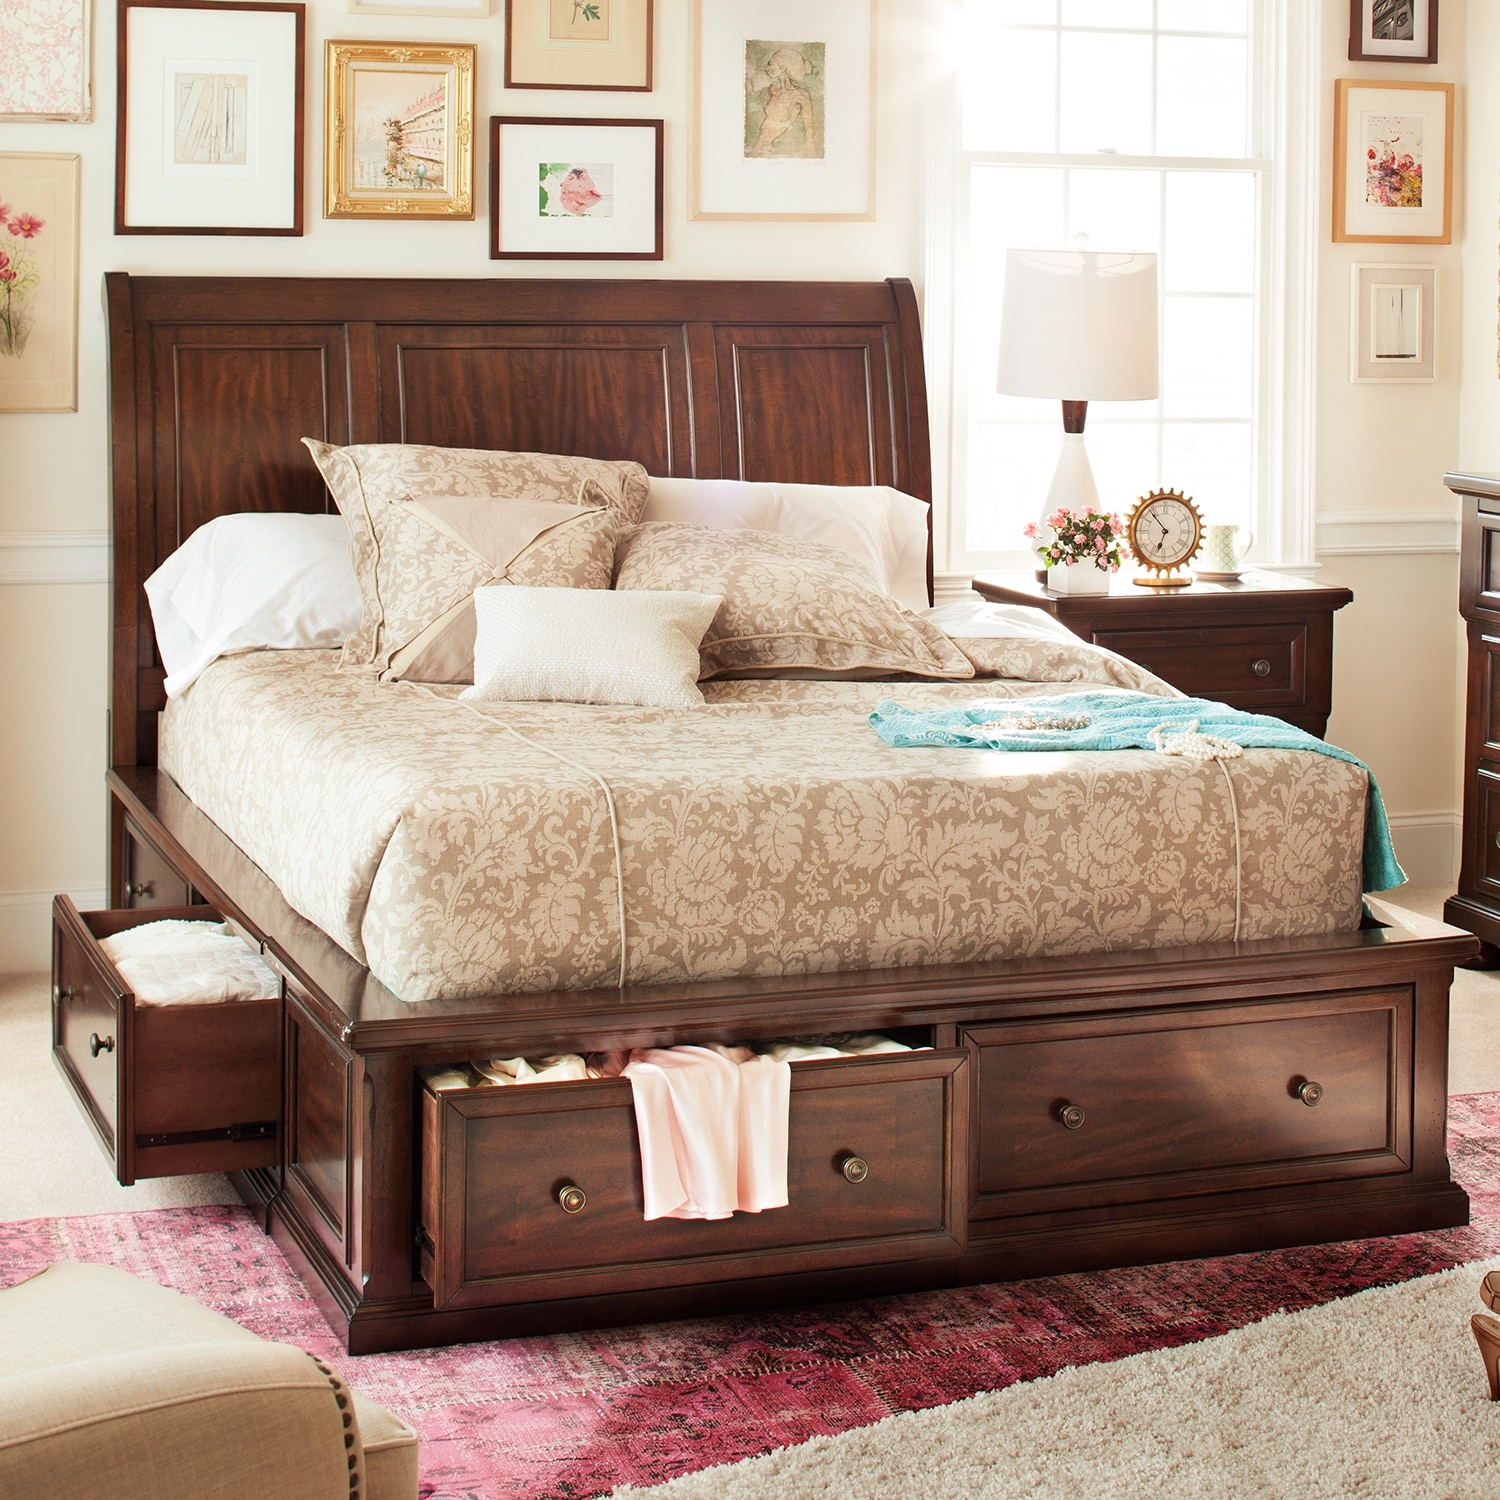 How Big Is A Queen Bed Hanover Queen Storage Bed Value City Furniture